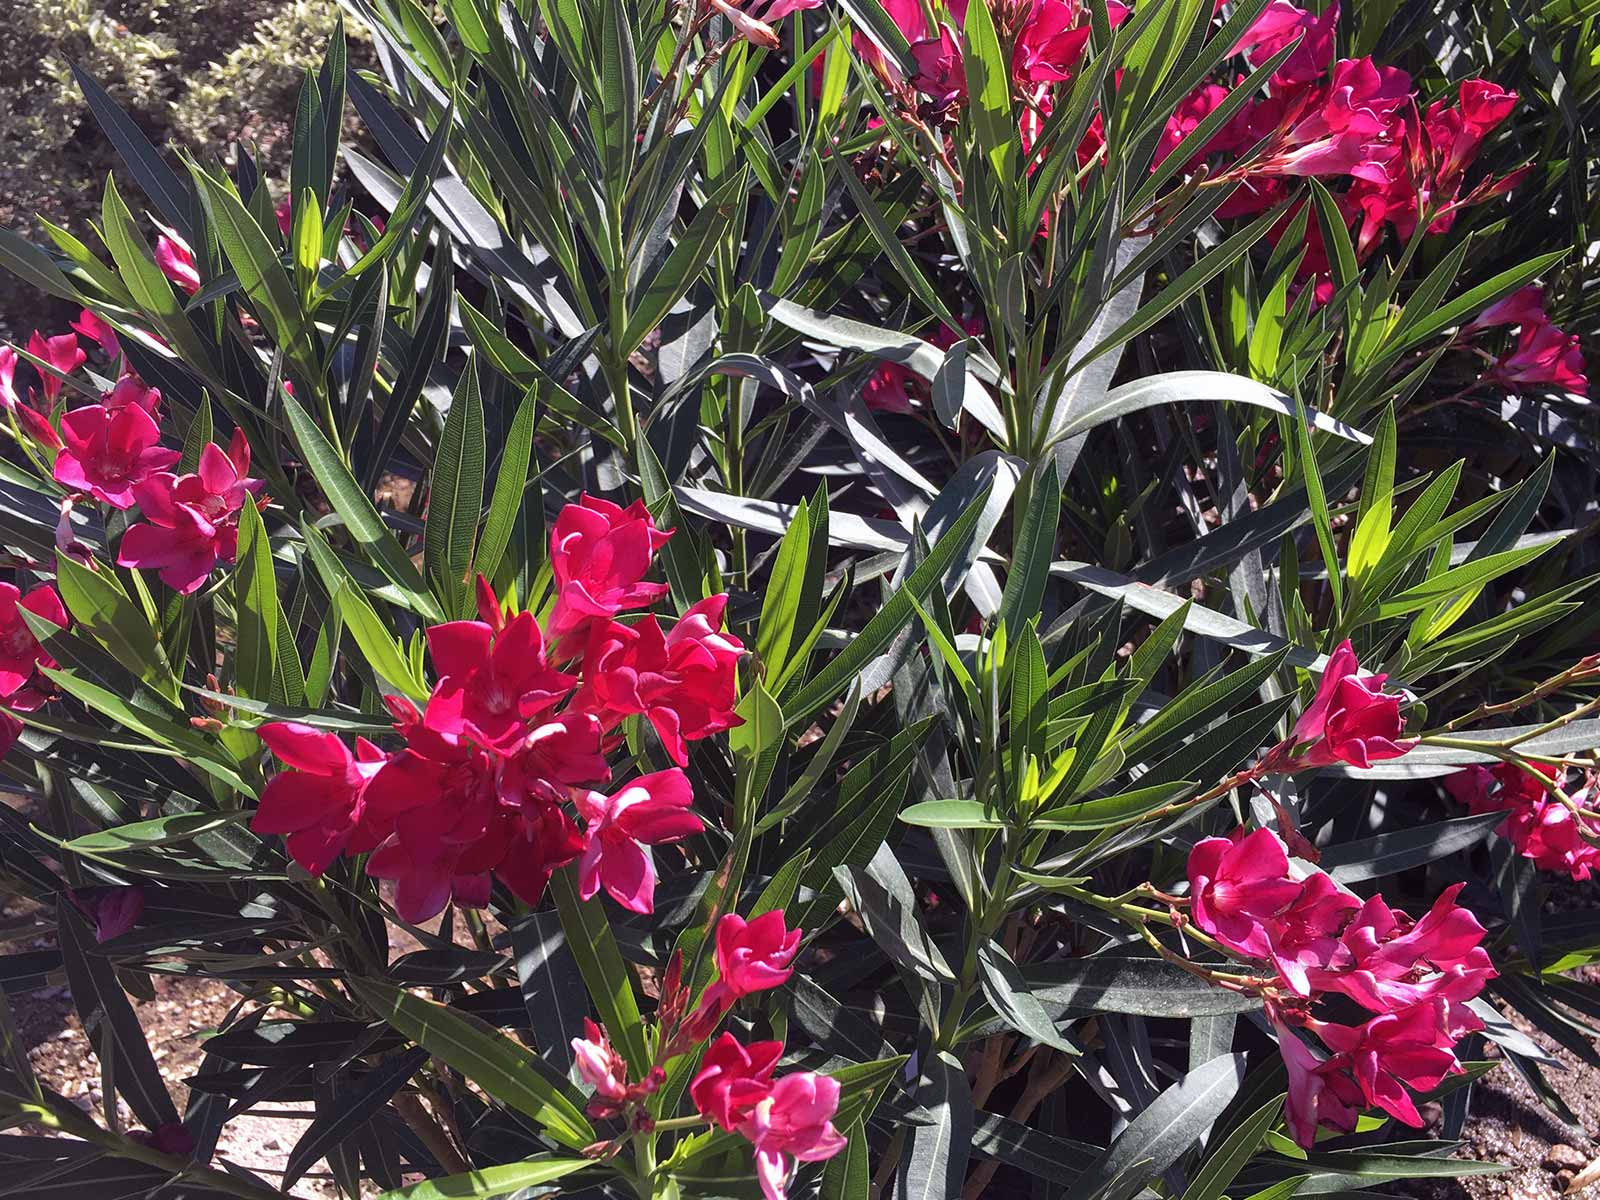 oleander-shrub-photo-red-bloom